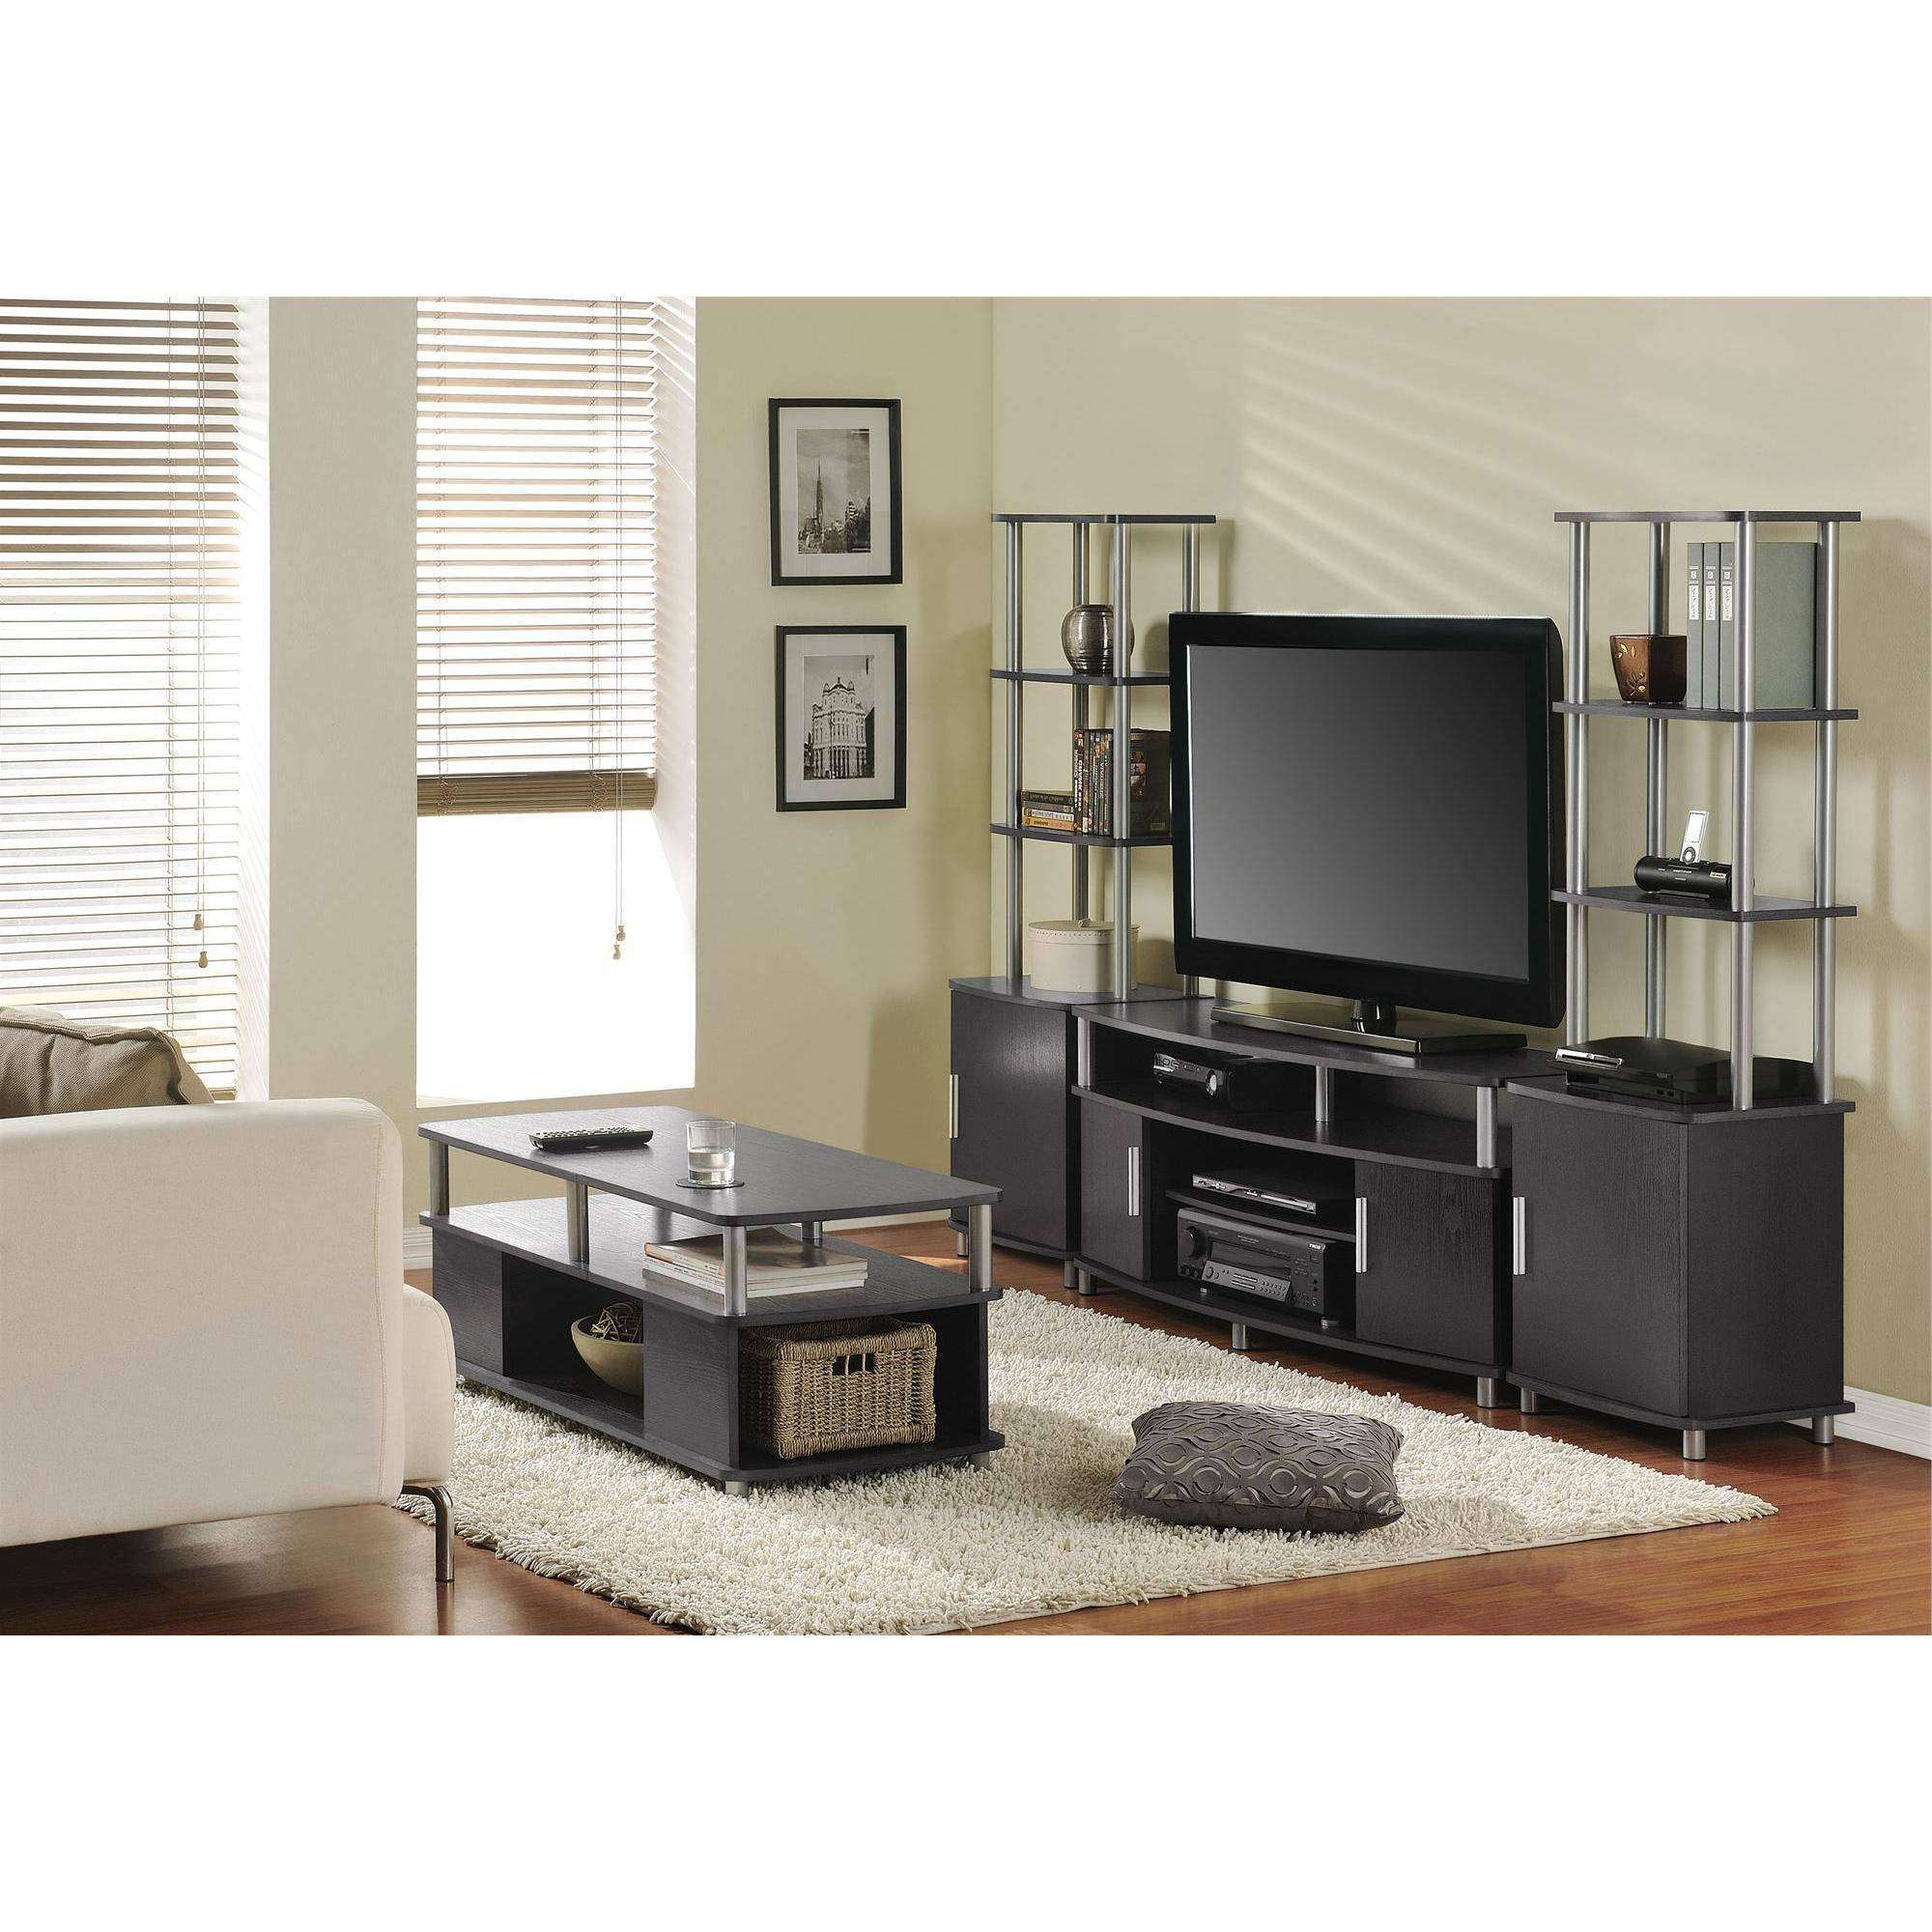 Coffee Table : Coffee Table Tv Stand And Breathtaking Photo With Coffee Tables And Tv Stands Matching (View 3 of 20)